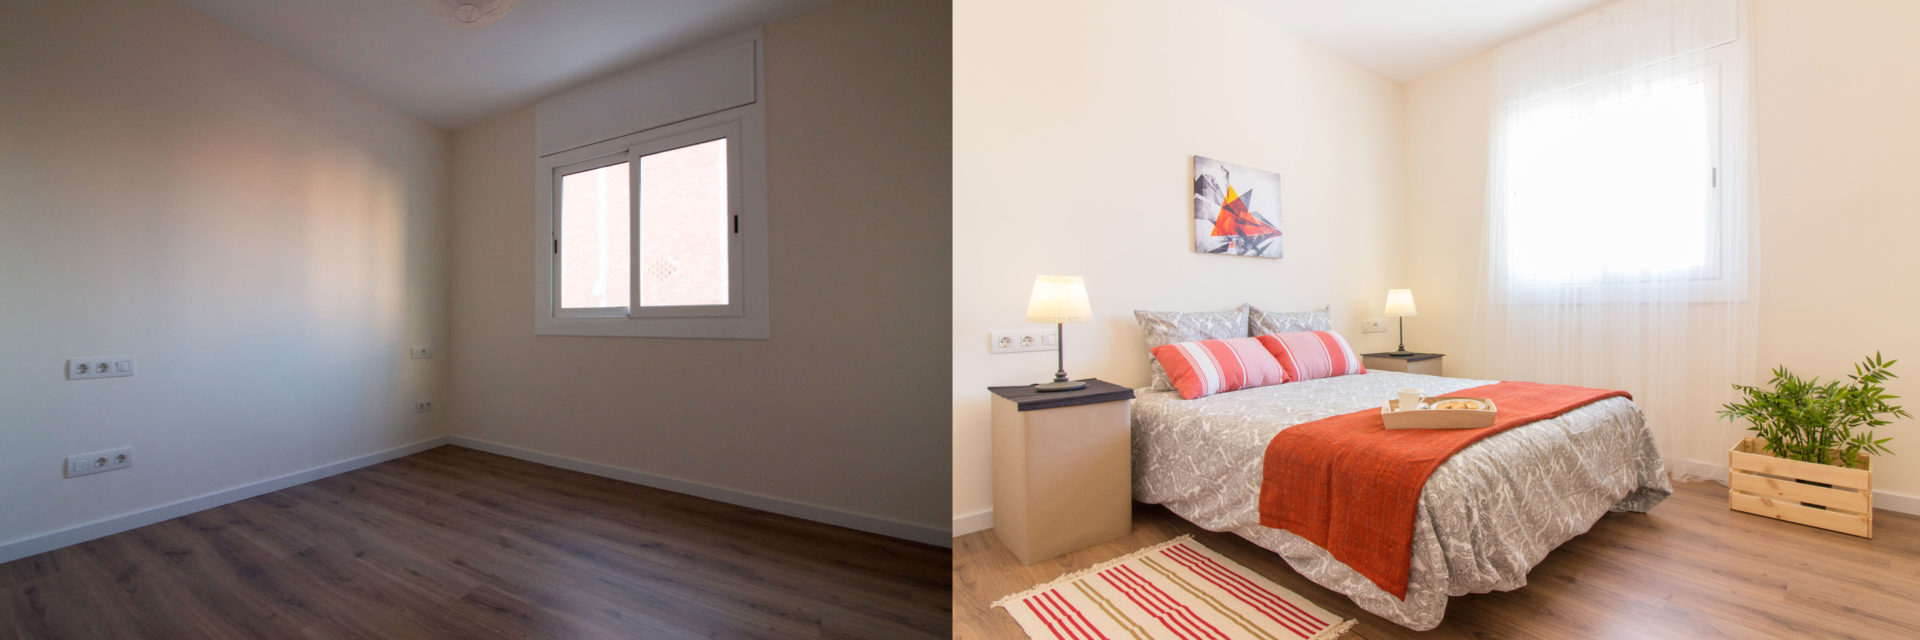 home staging dormitorio ejemplo barcelona